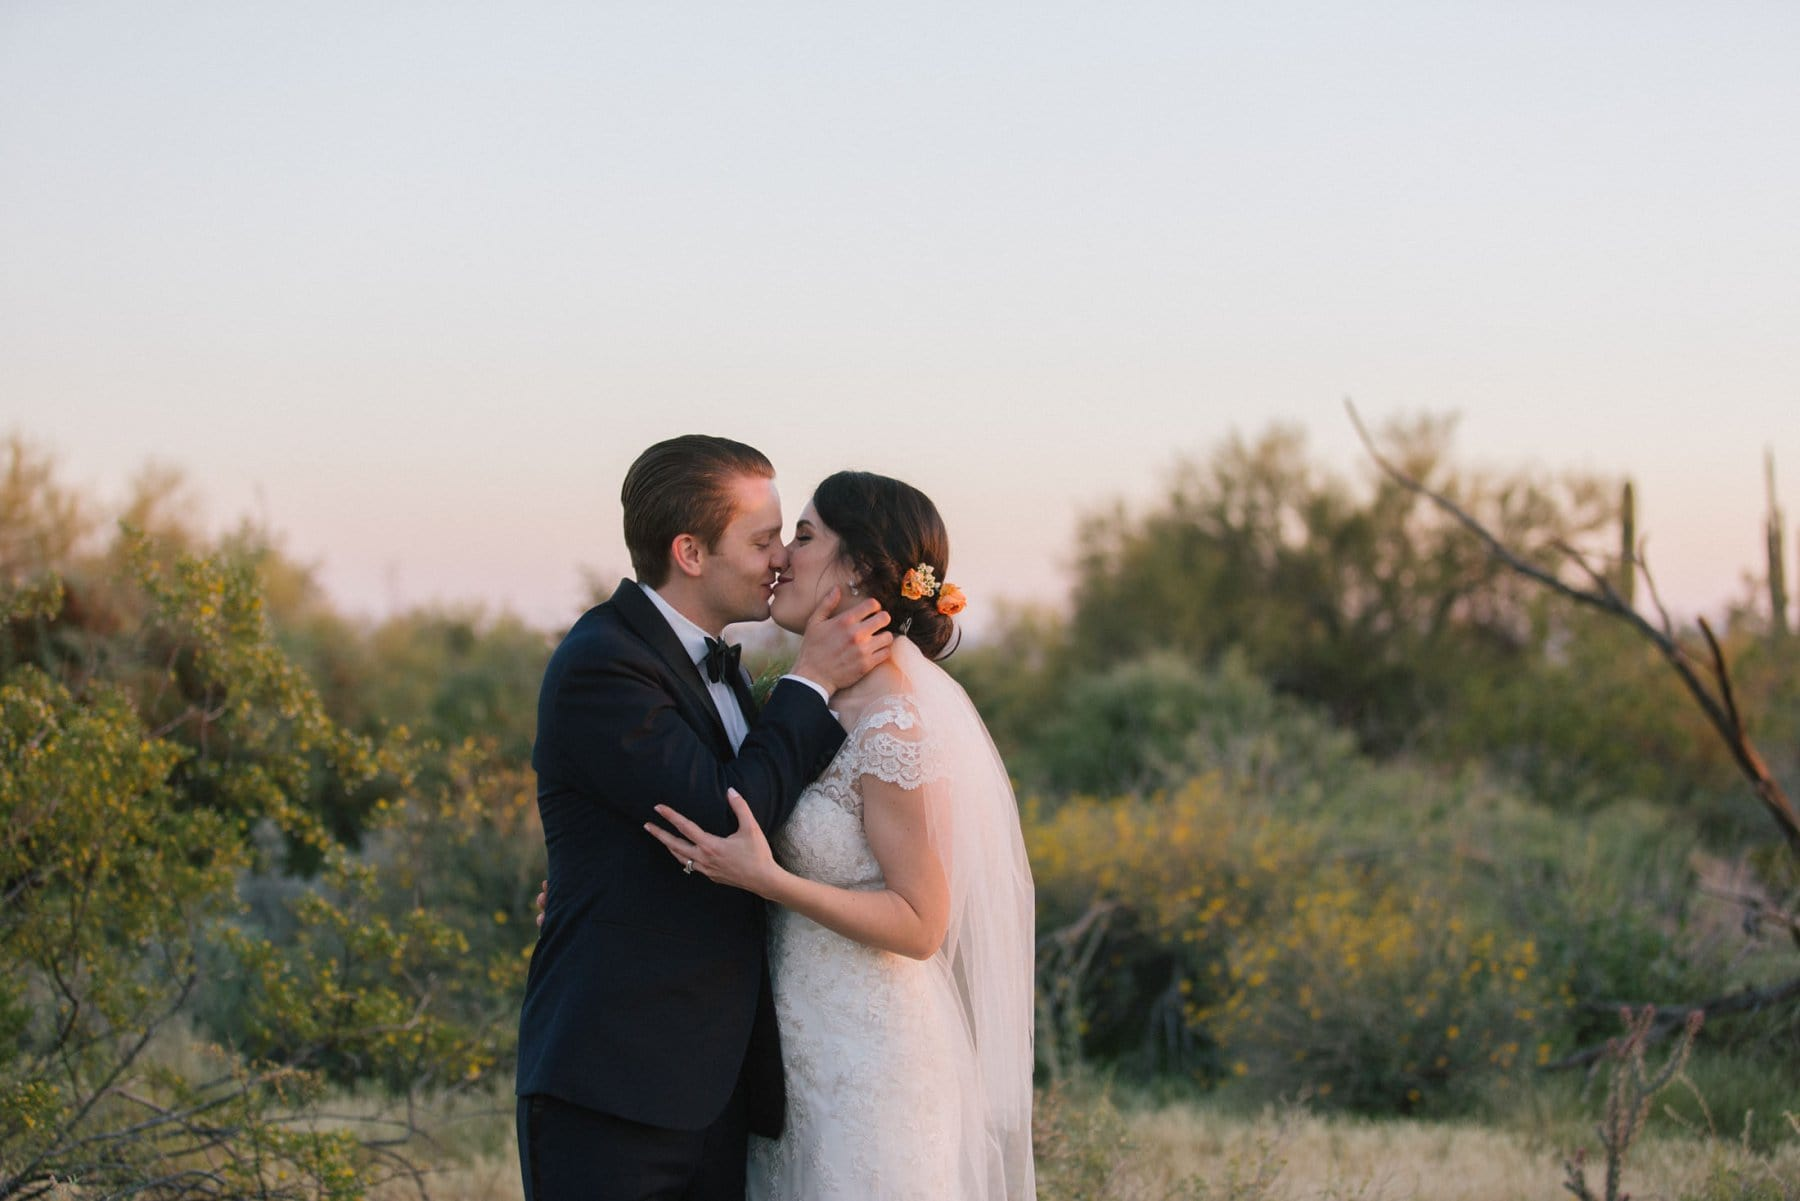 Arizona desert at sunset bride & groom natural real photos